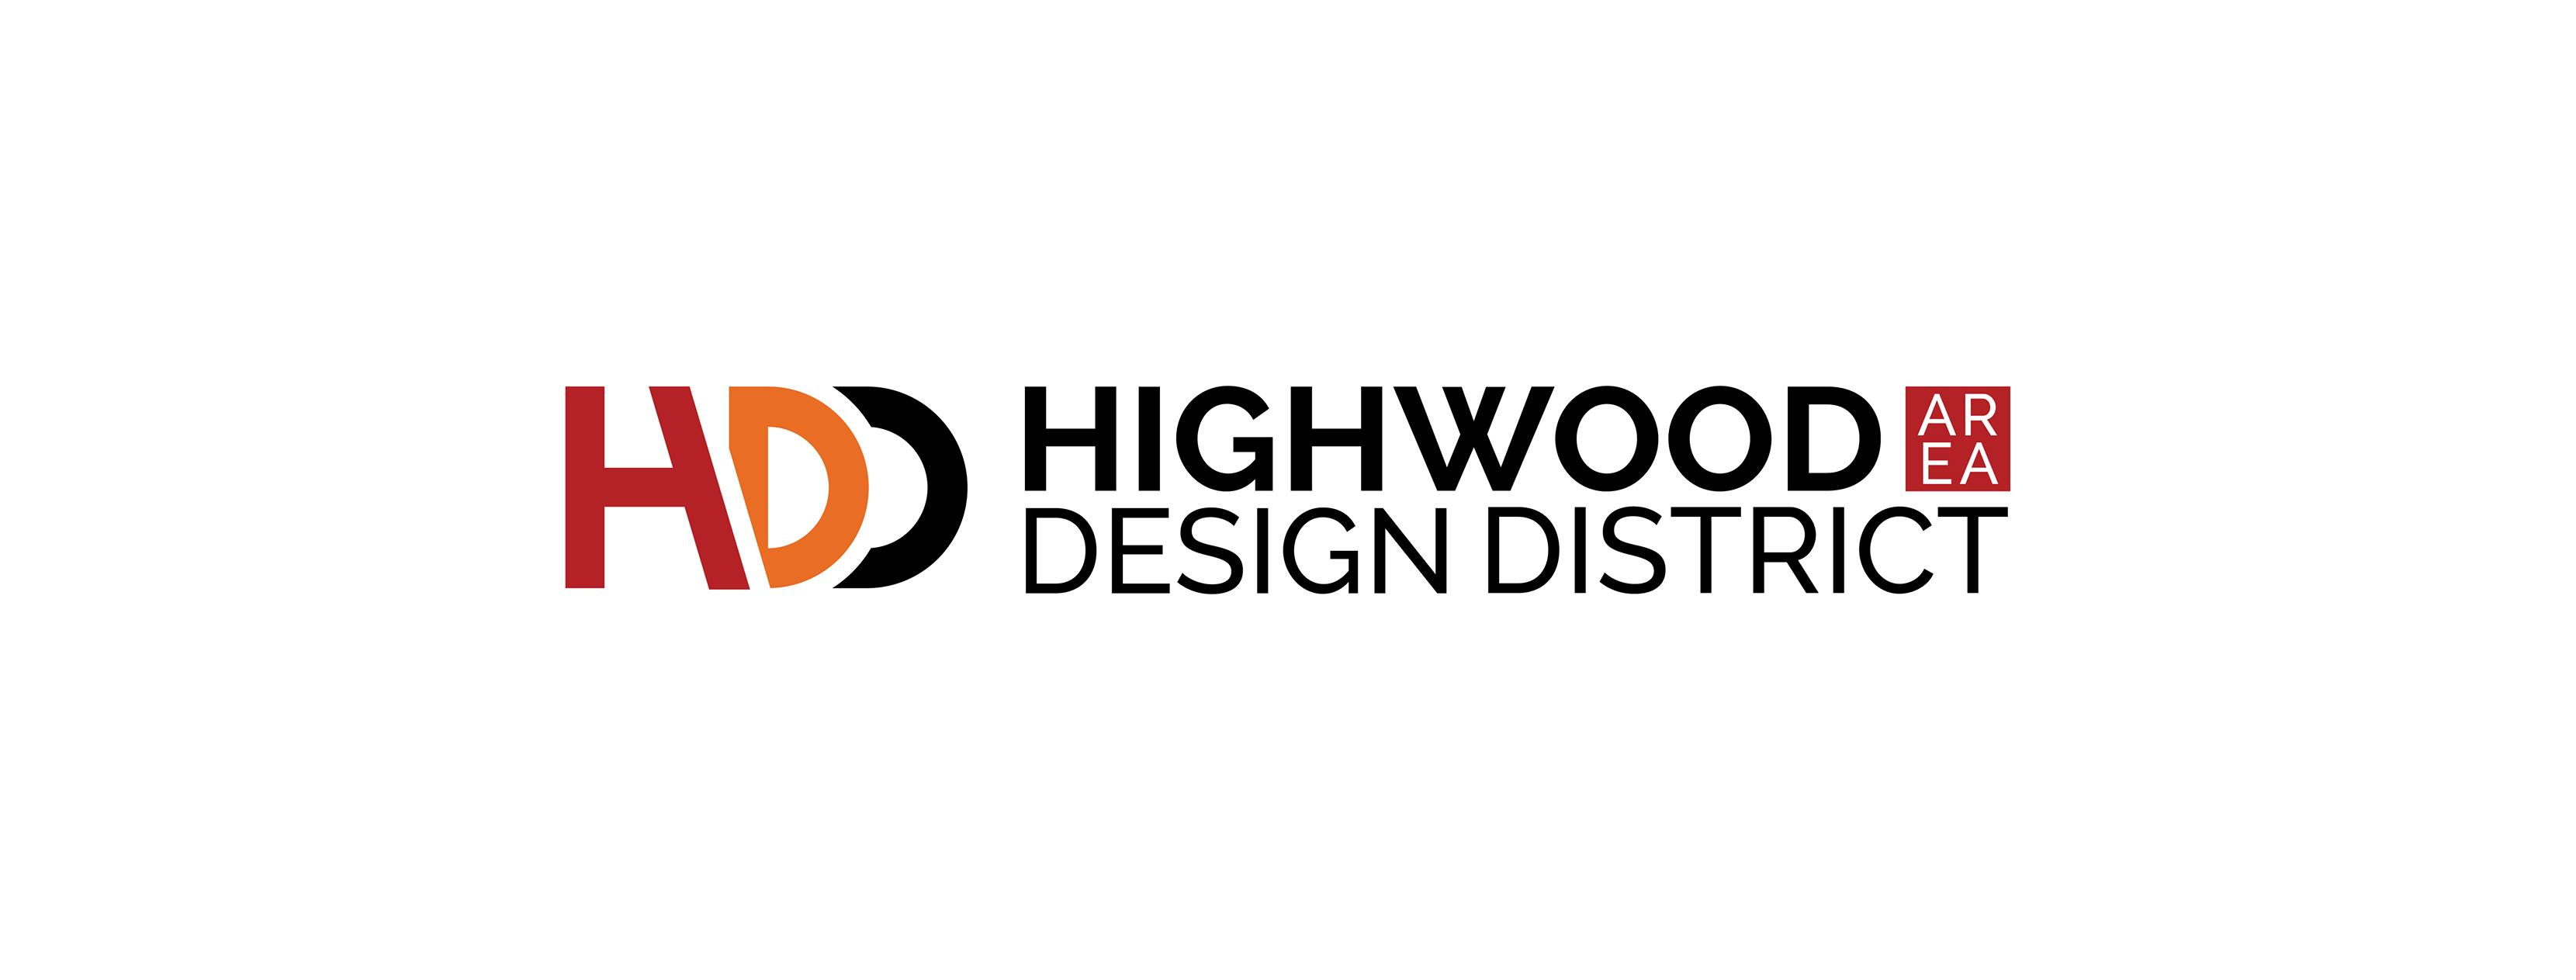 Highwood Design Week